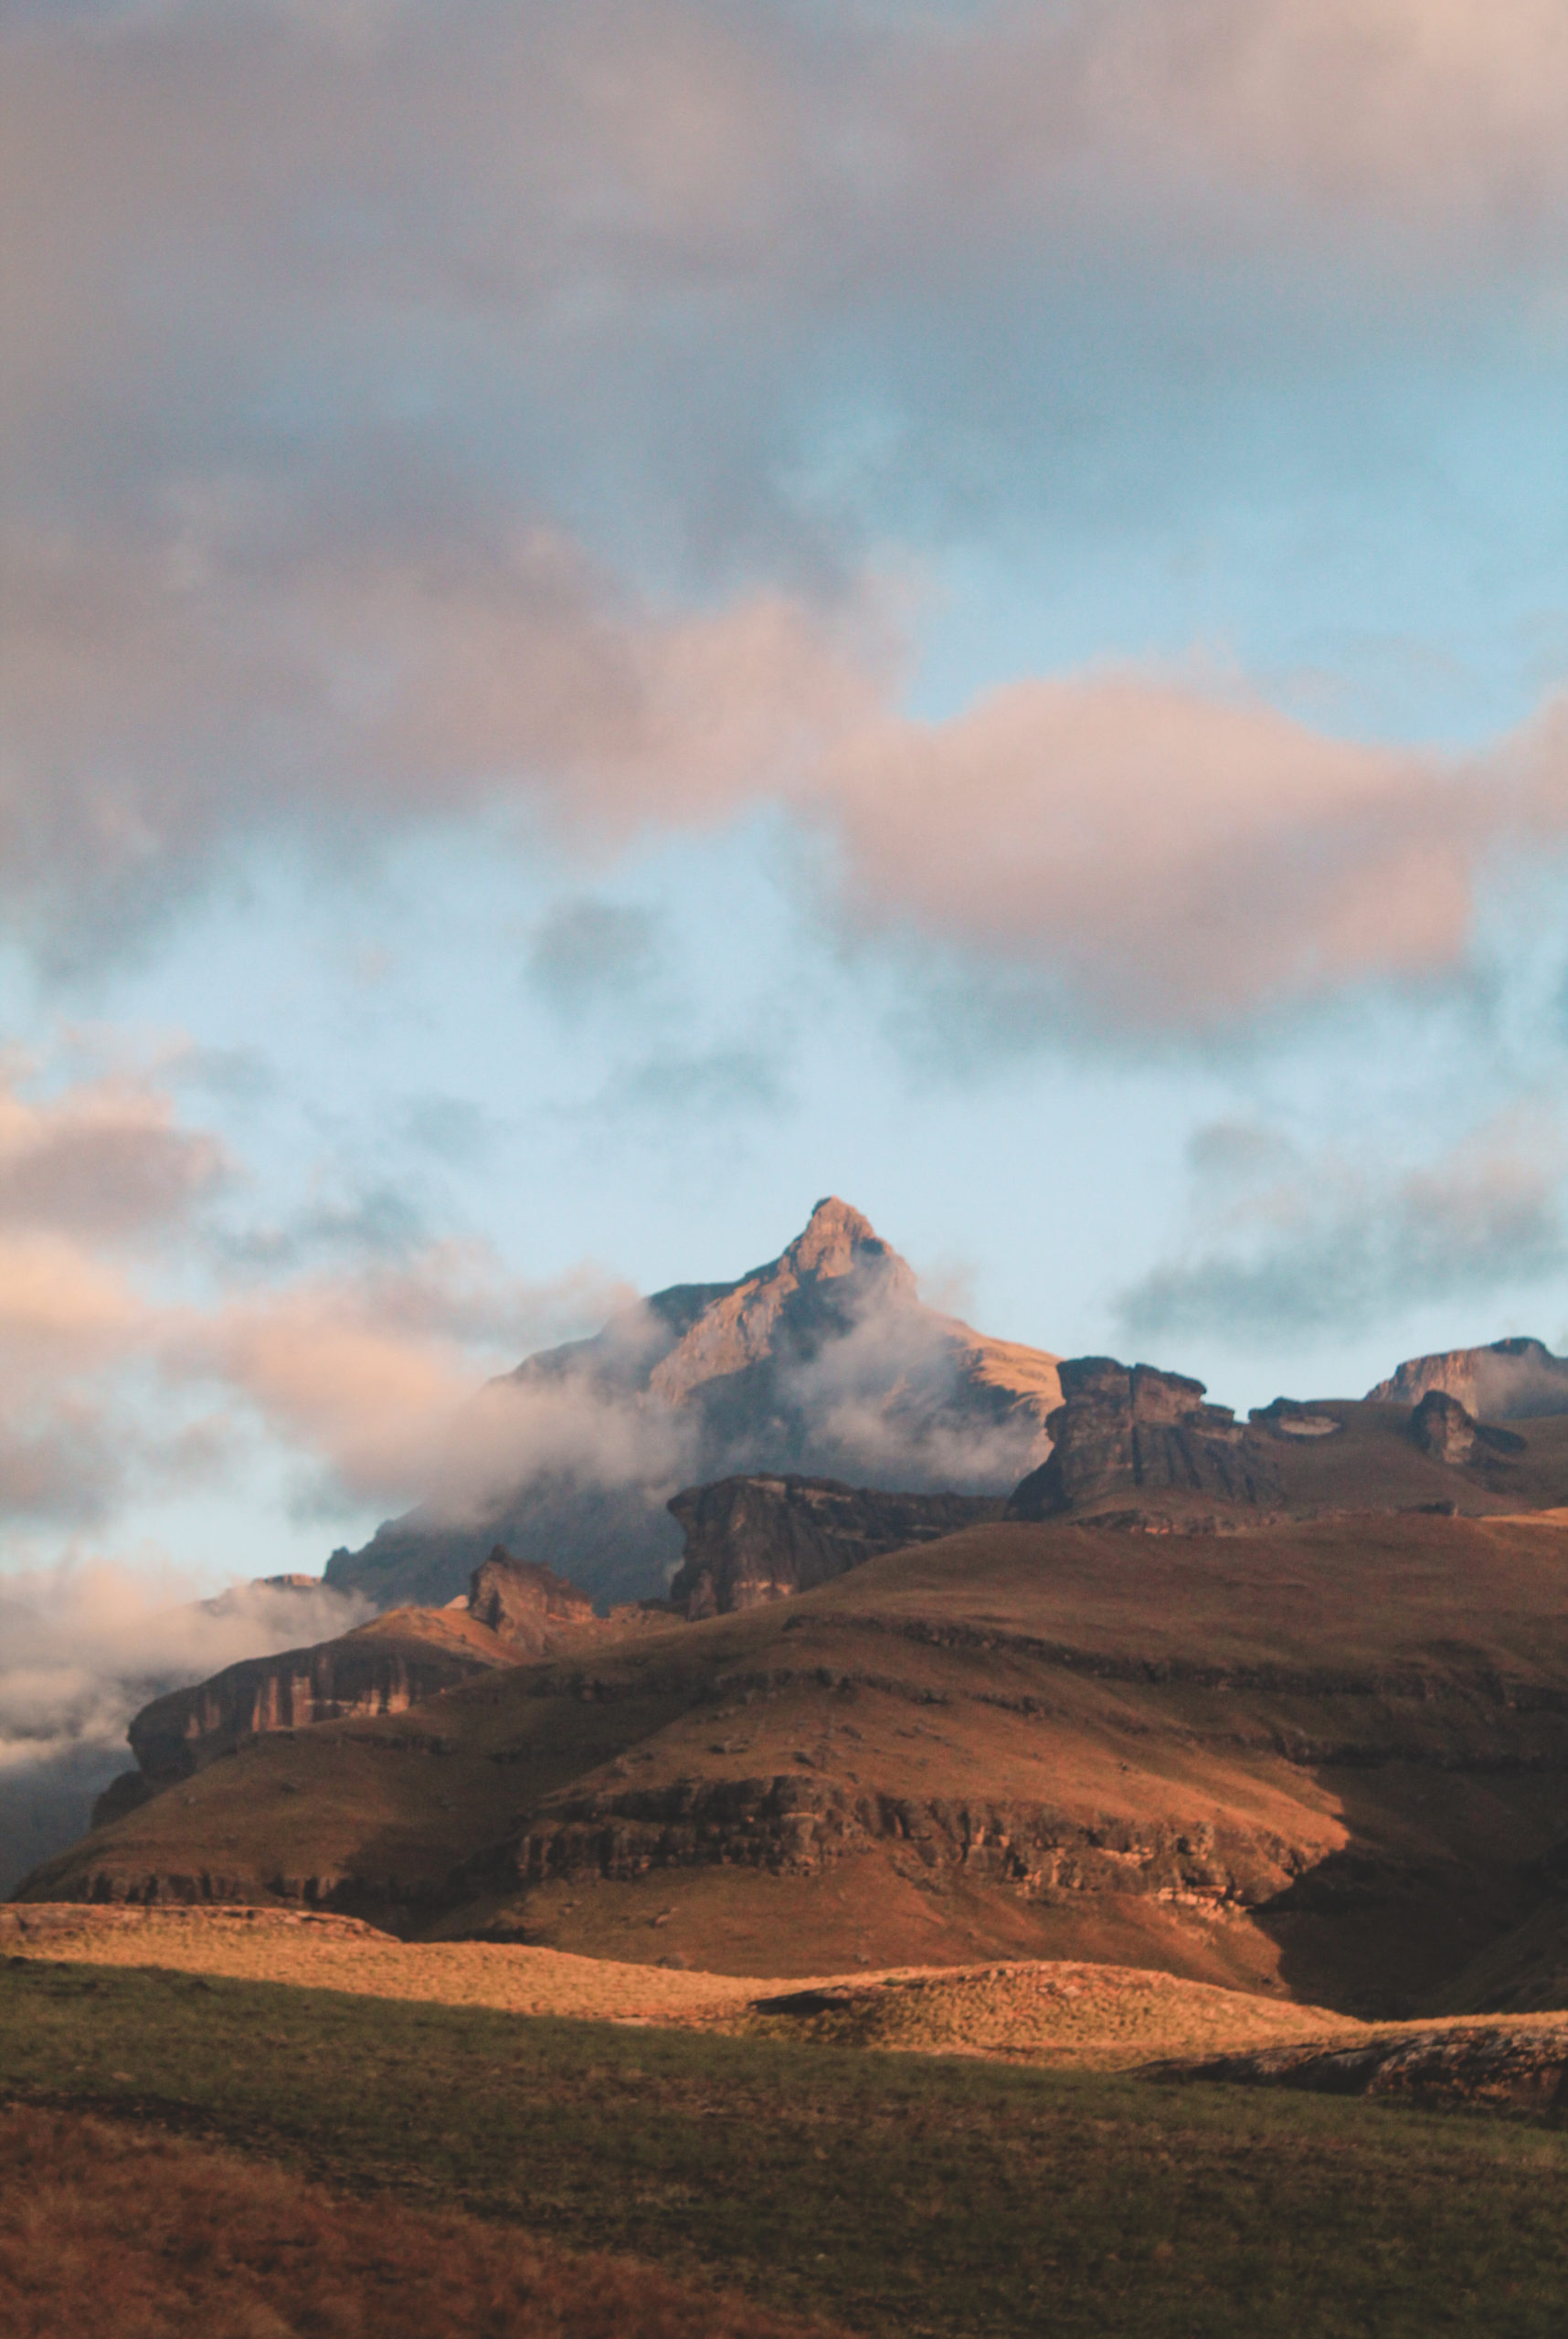 Here's a beautiful picture of a mountain in South Africa, to show DIO media's photography skills.